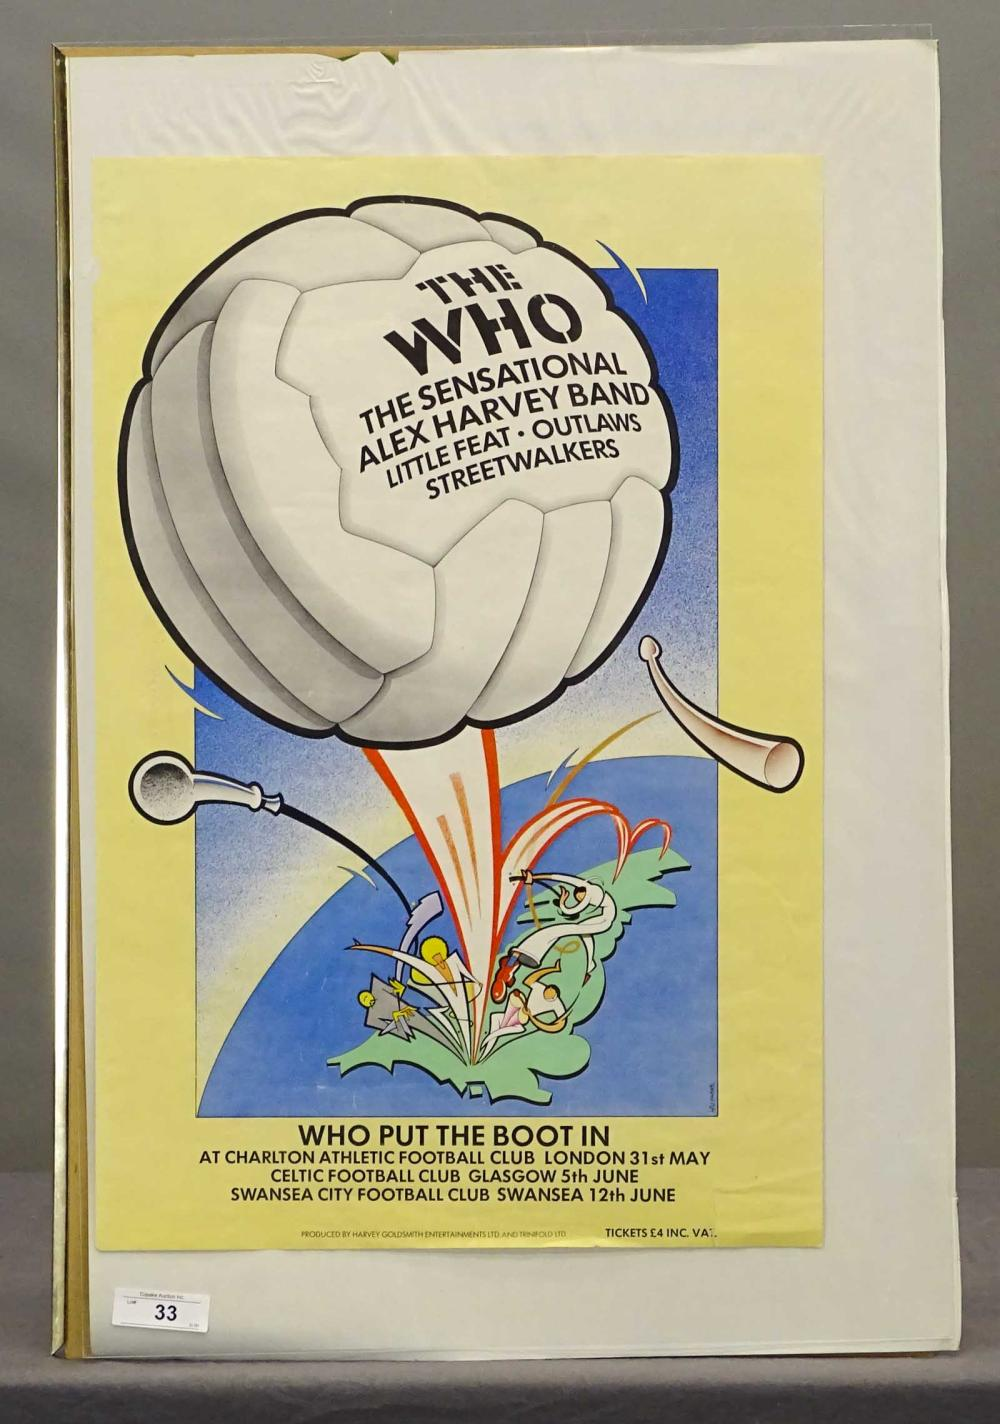 The Who Concert Poster